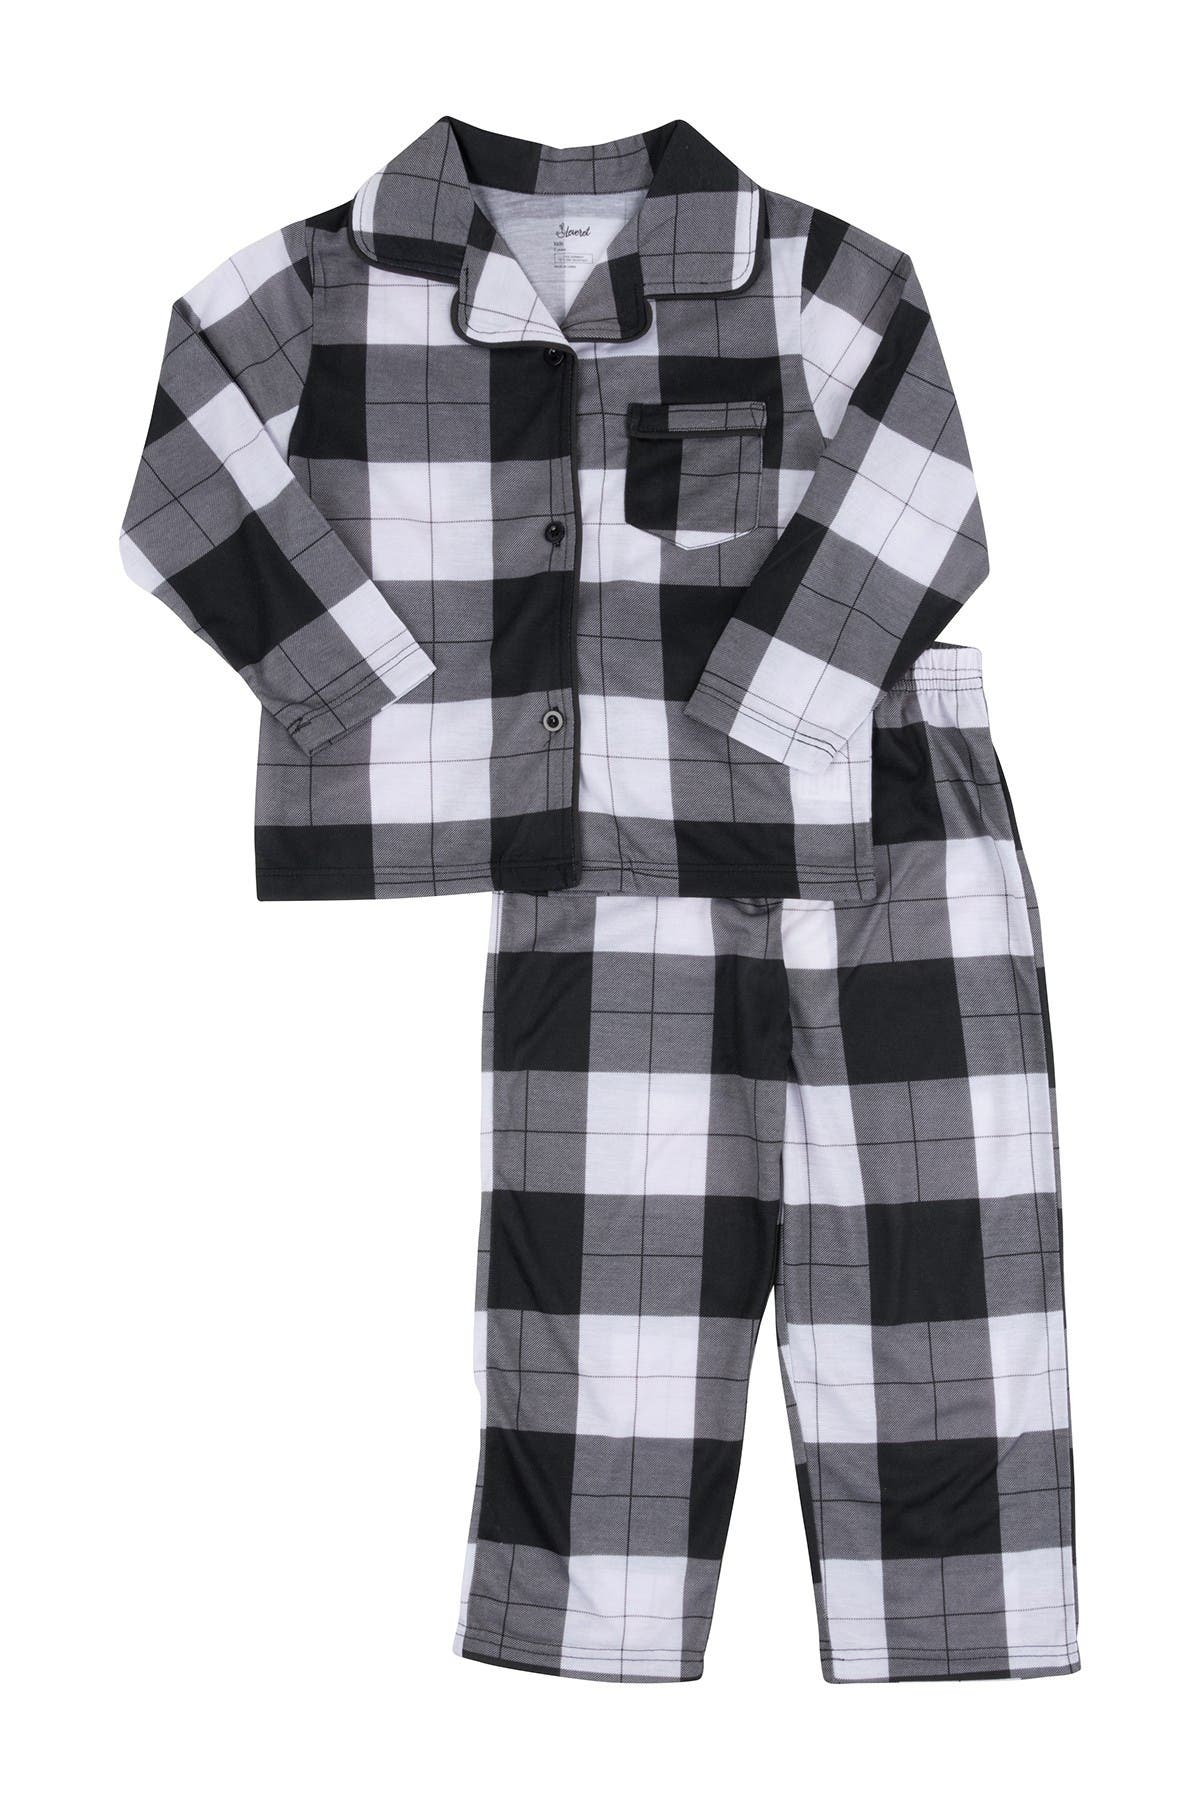 Image of Leveret Black and White Plaid 2-Piece Button Down Pajama Set